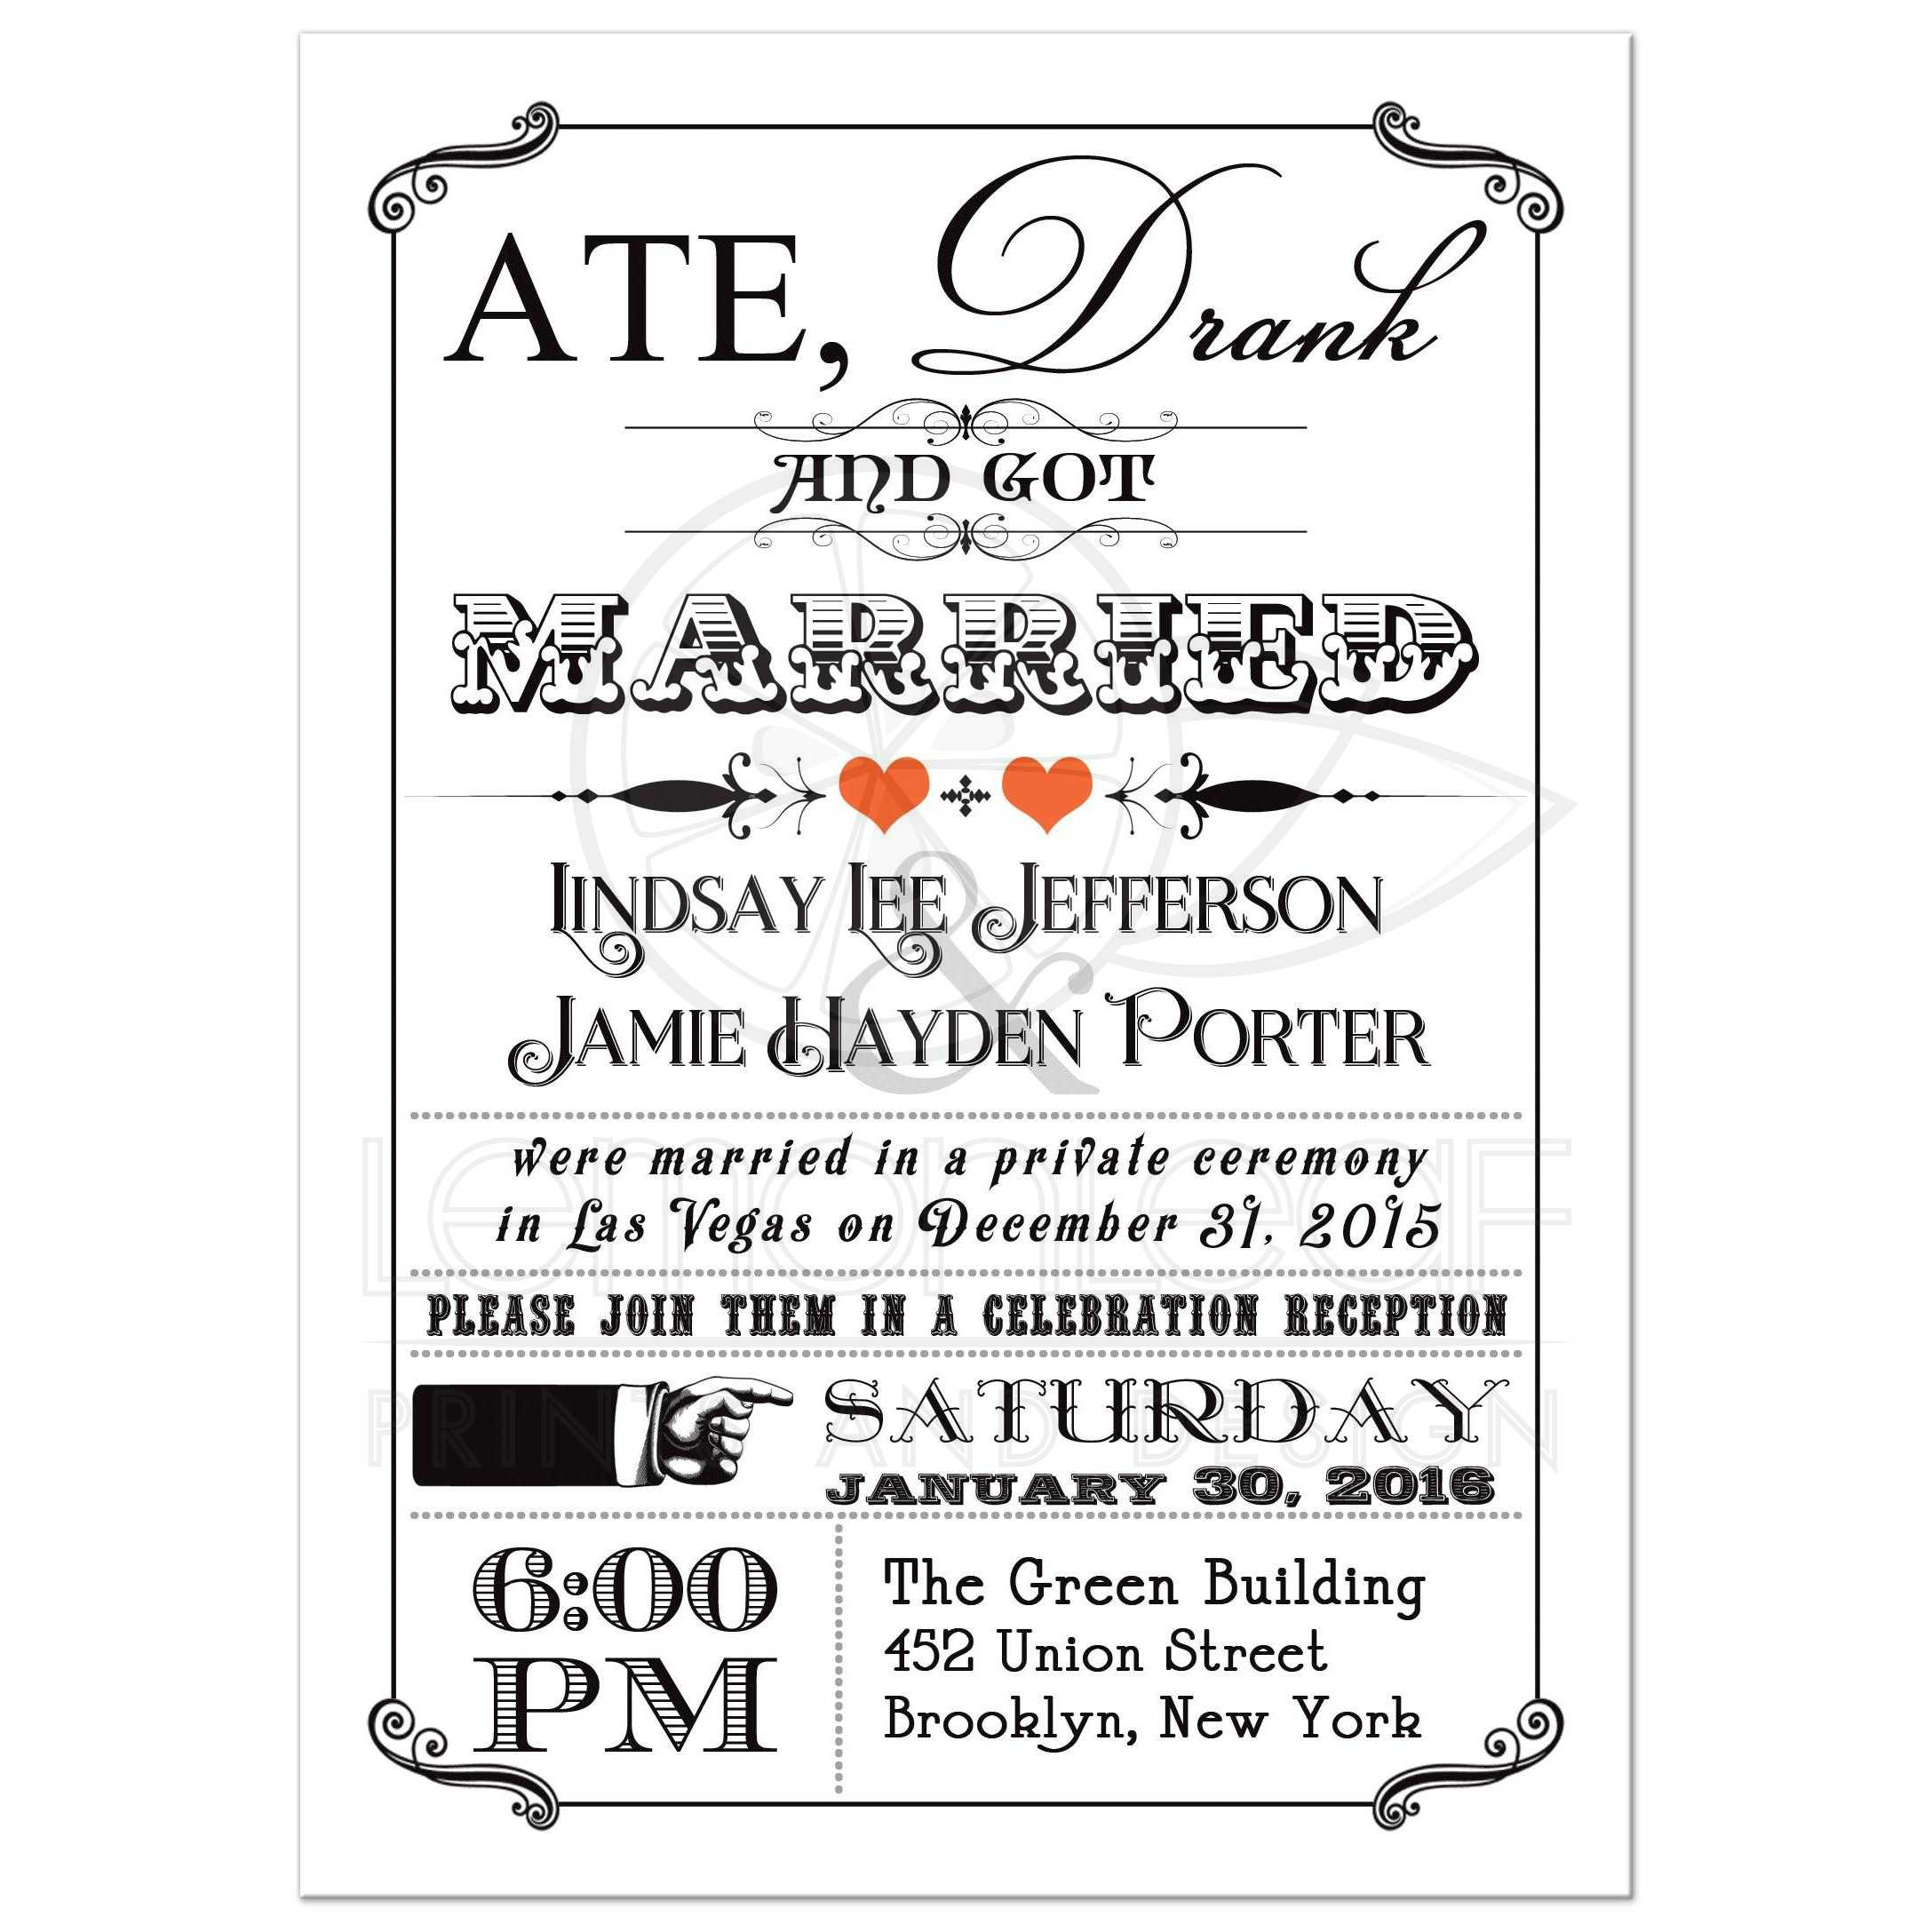 post wedding reception only invitation wording post wedding reception invitations ideas invitation wording for wedding reception only